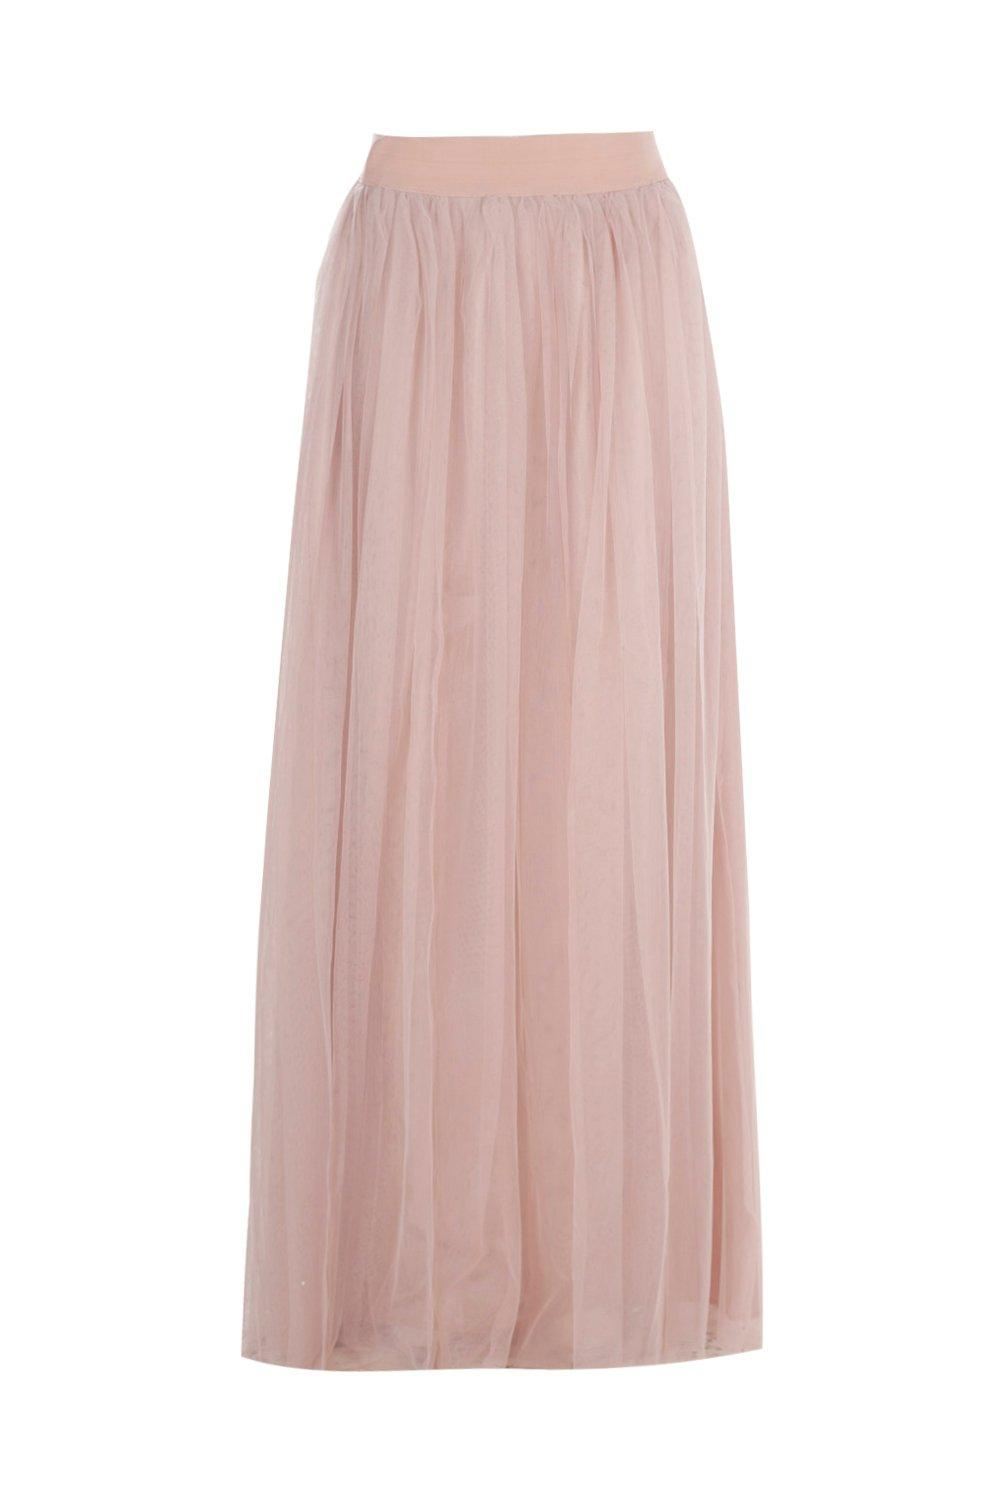 Boohoo-Hallie-Boutique-Gonna-Maxi-Extra-Lunga-In-Tulle-per-Donna